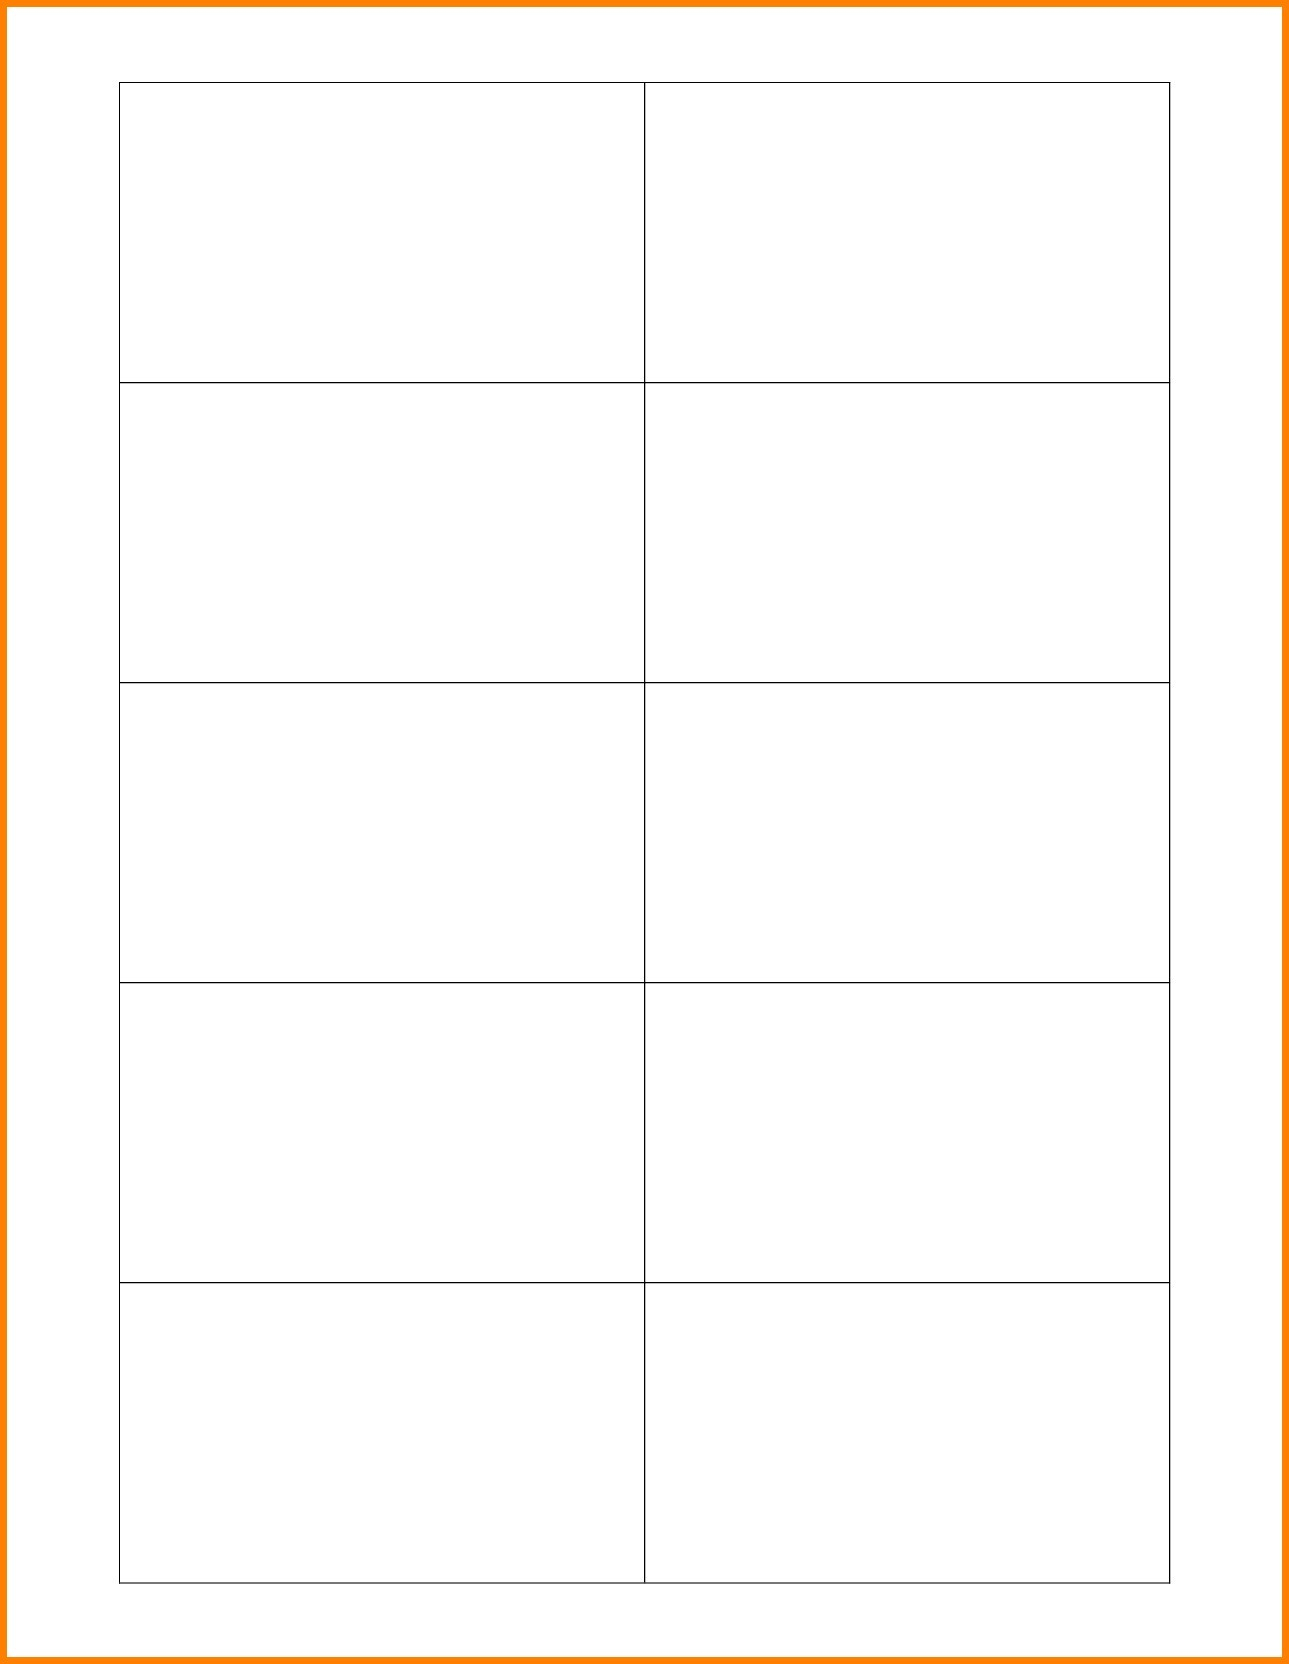 006 Template Ideas Index Card Word Flash Free Chinese For 3X5 Blank Index Card Template